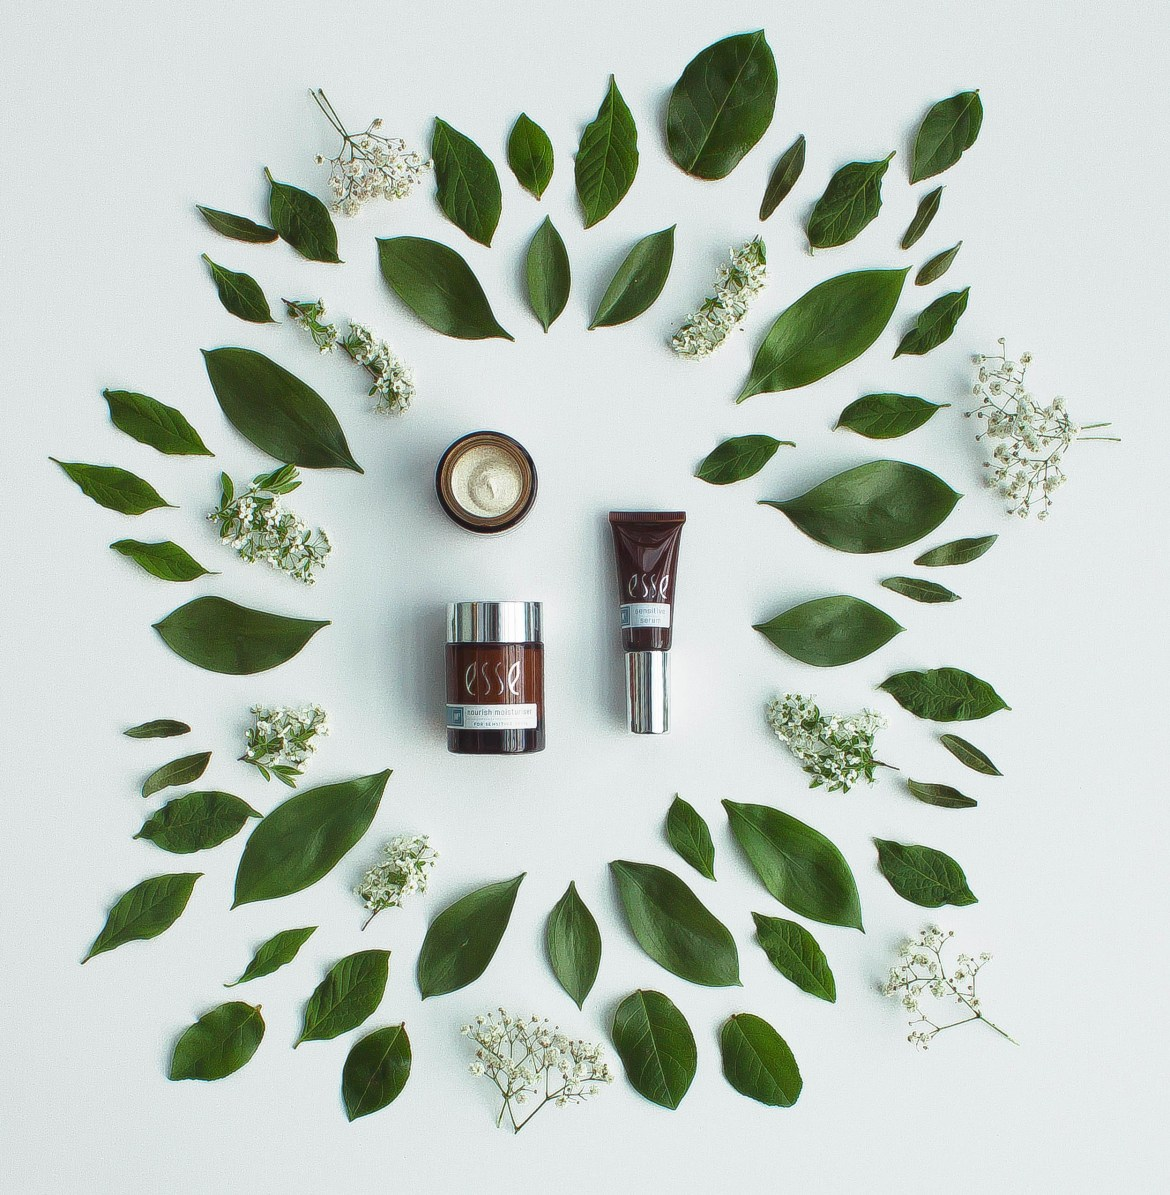 beauty product ingredients debunked